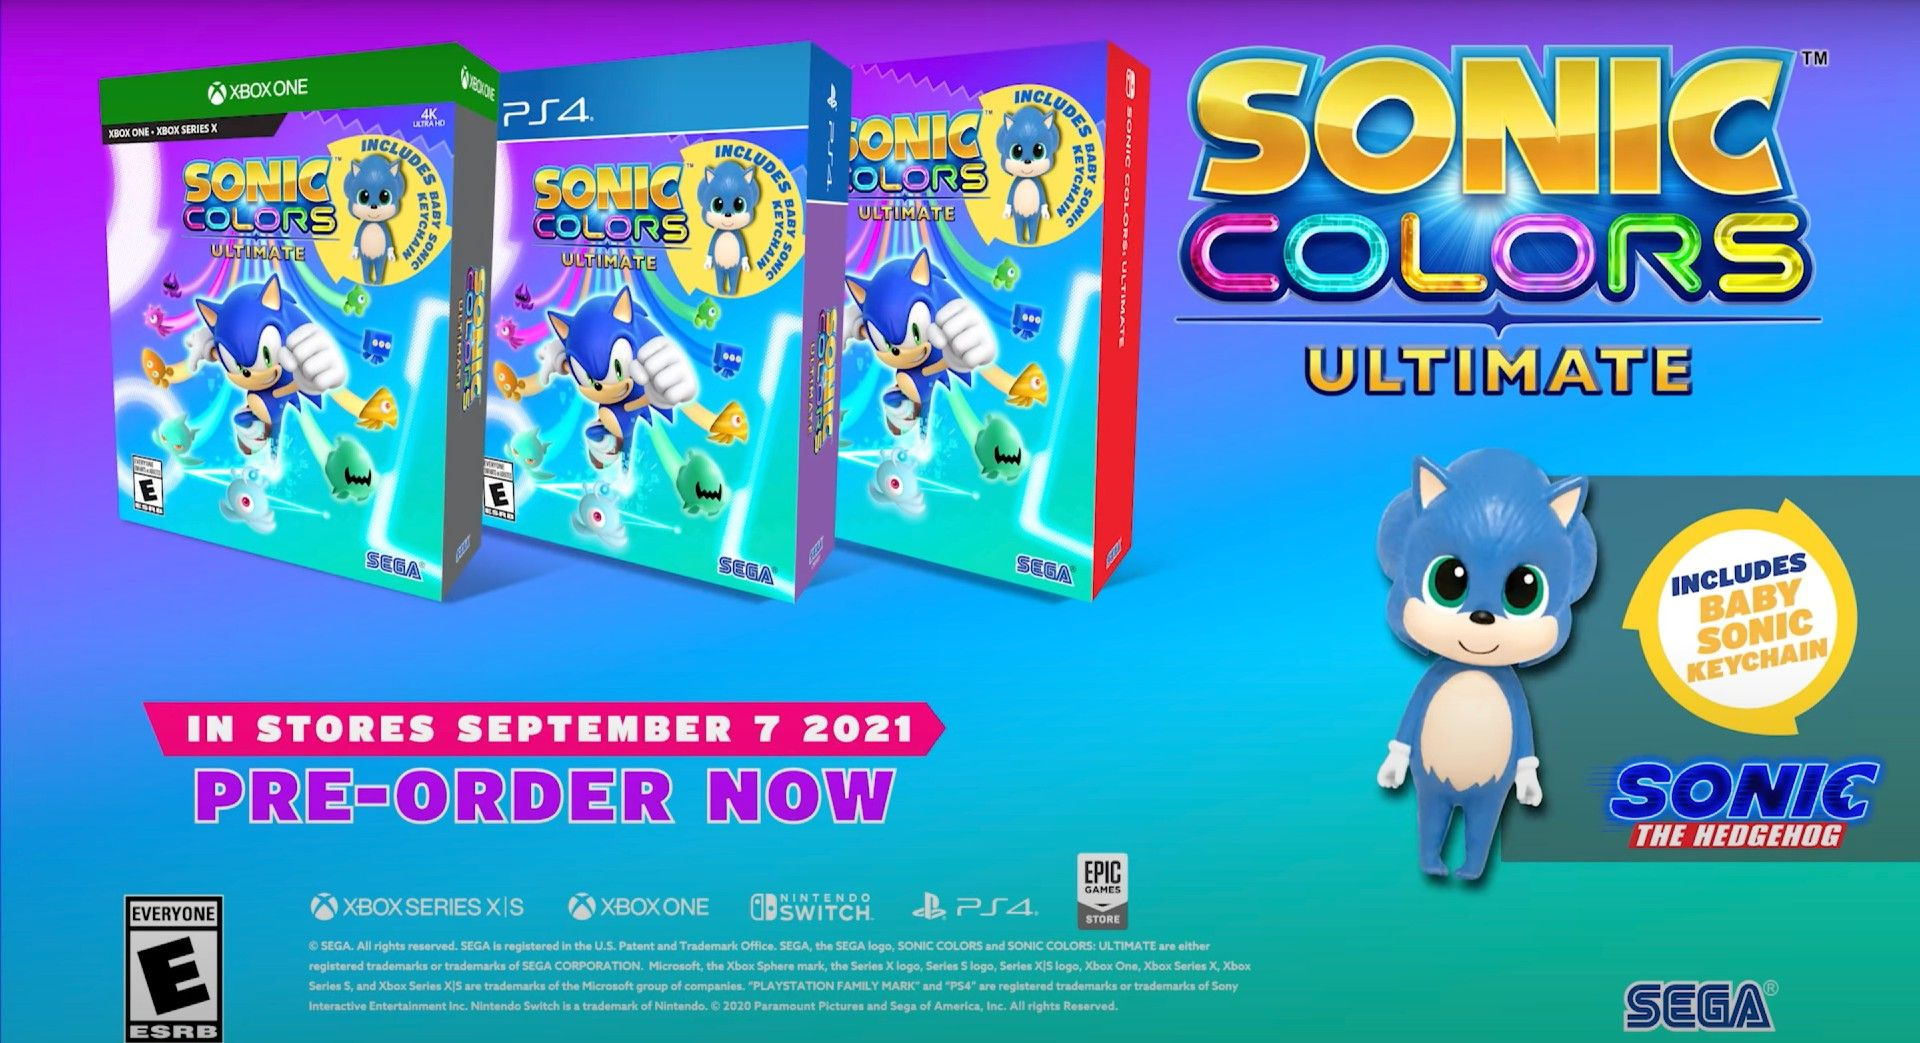 Sonic Colors: Ultimate No PS5 Version